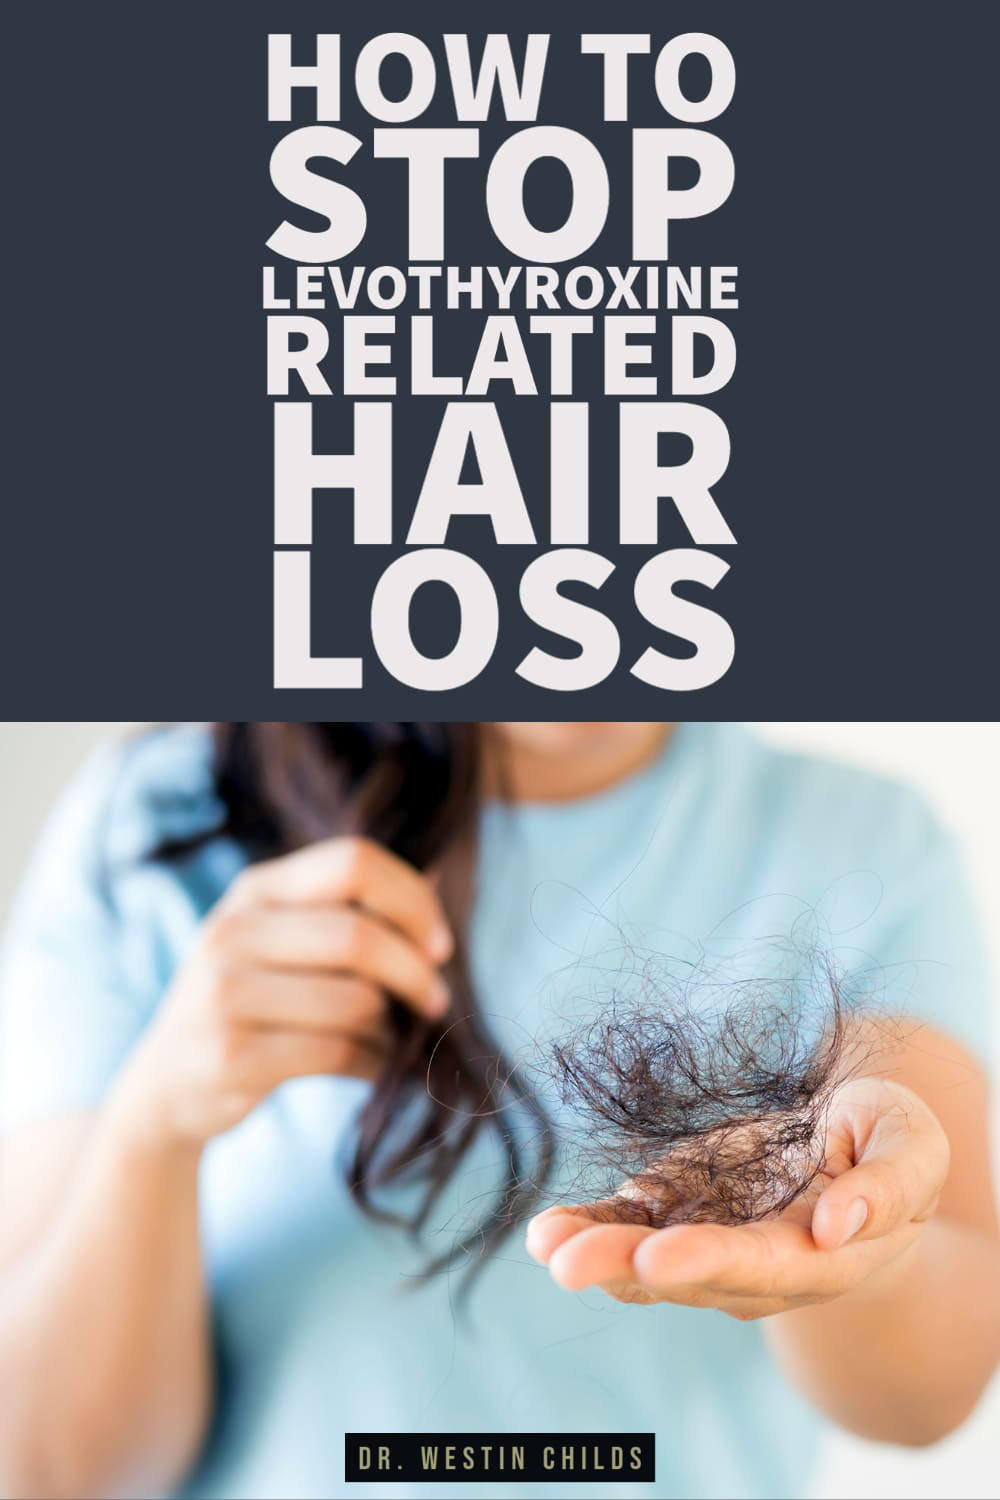 how to stop levothyroxine related hair loss